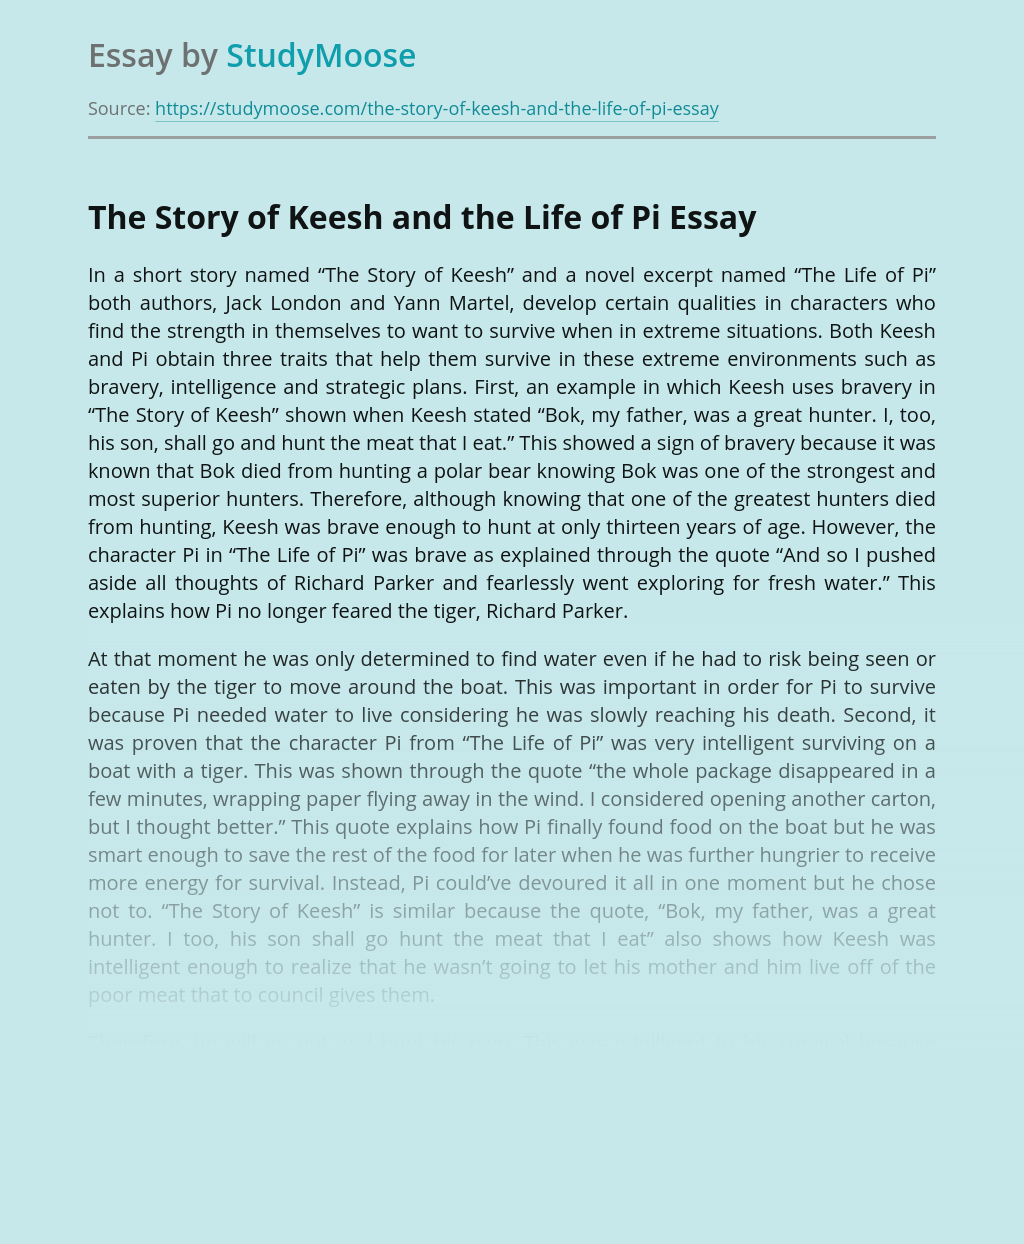 The Story of Keesh and the Life of Pi